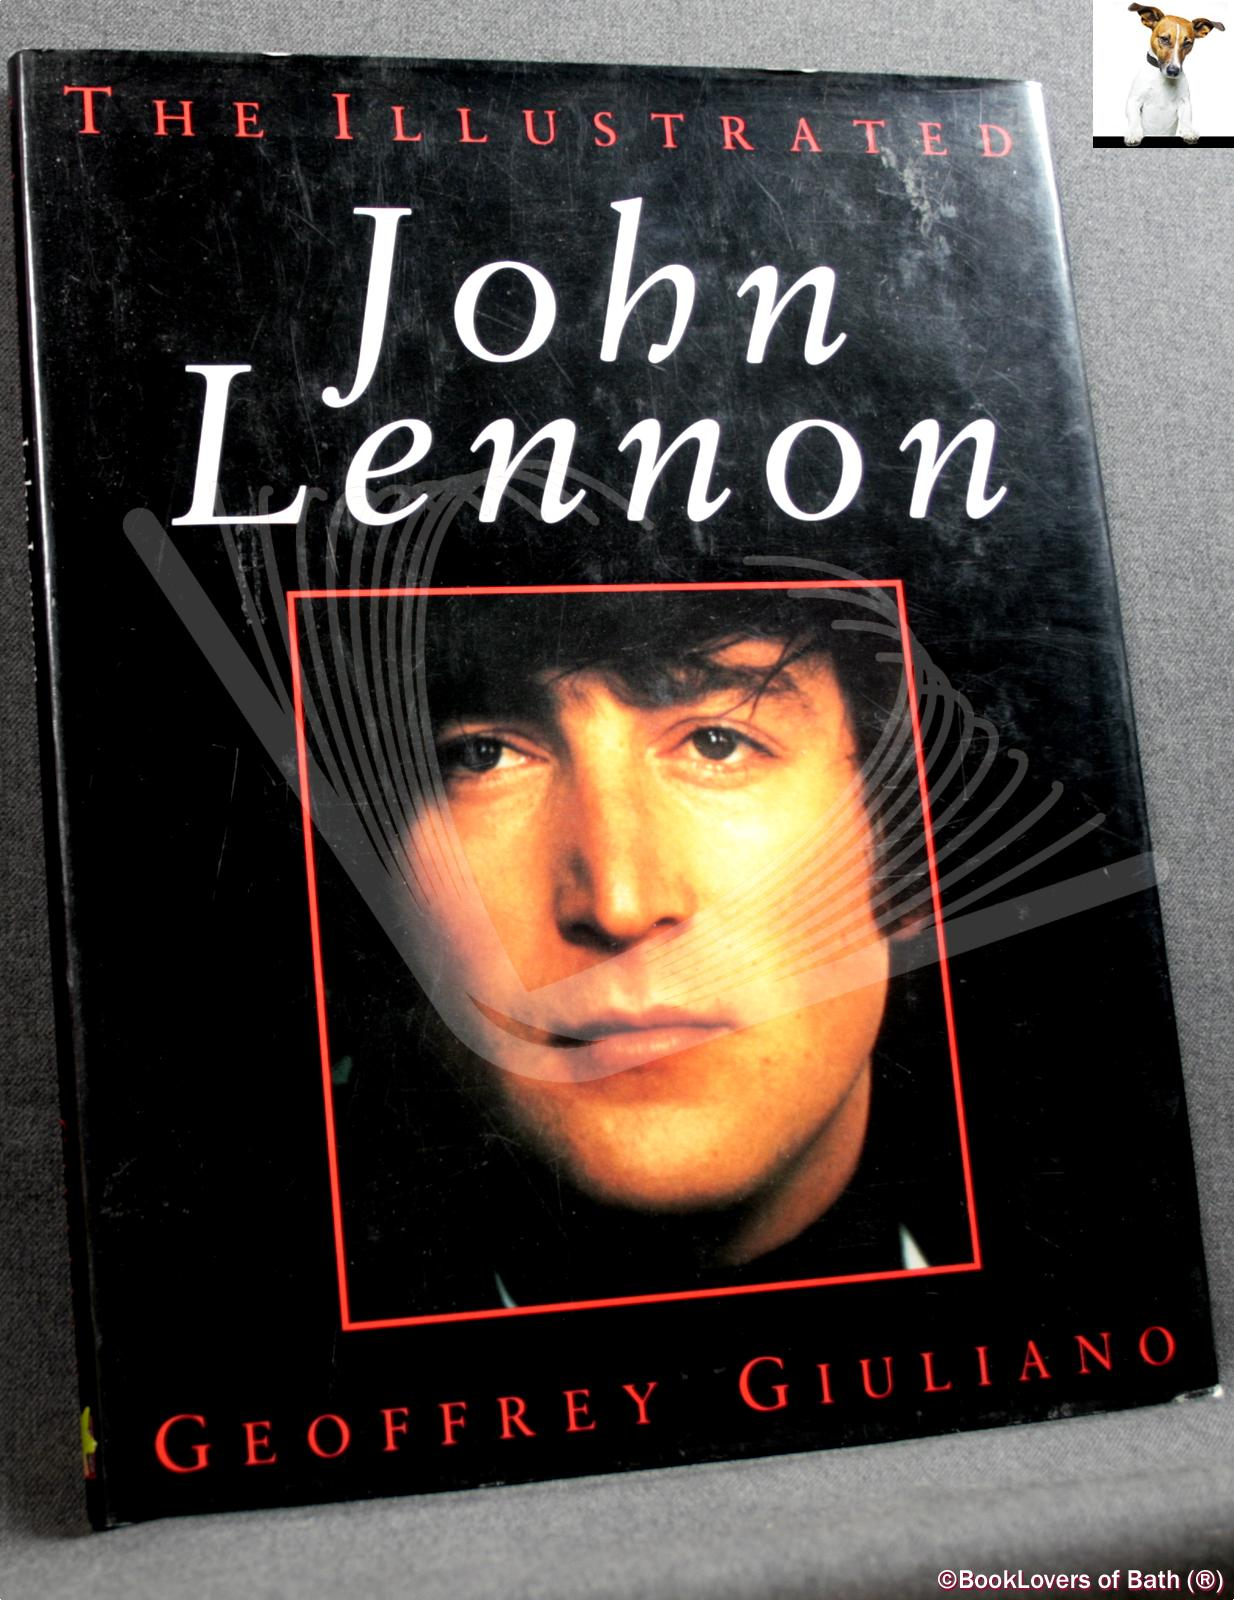 The Illustrated John Lennon - Geoffrey Giuliano